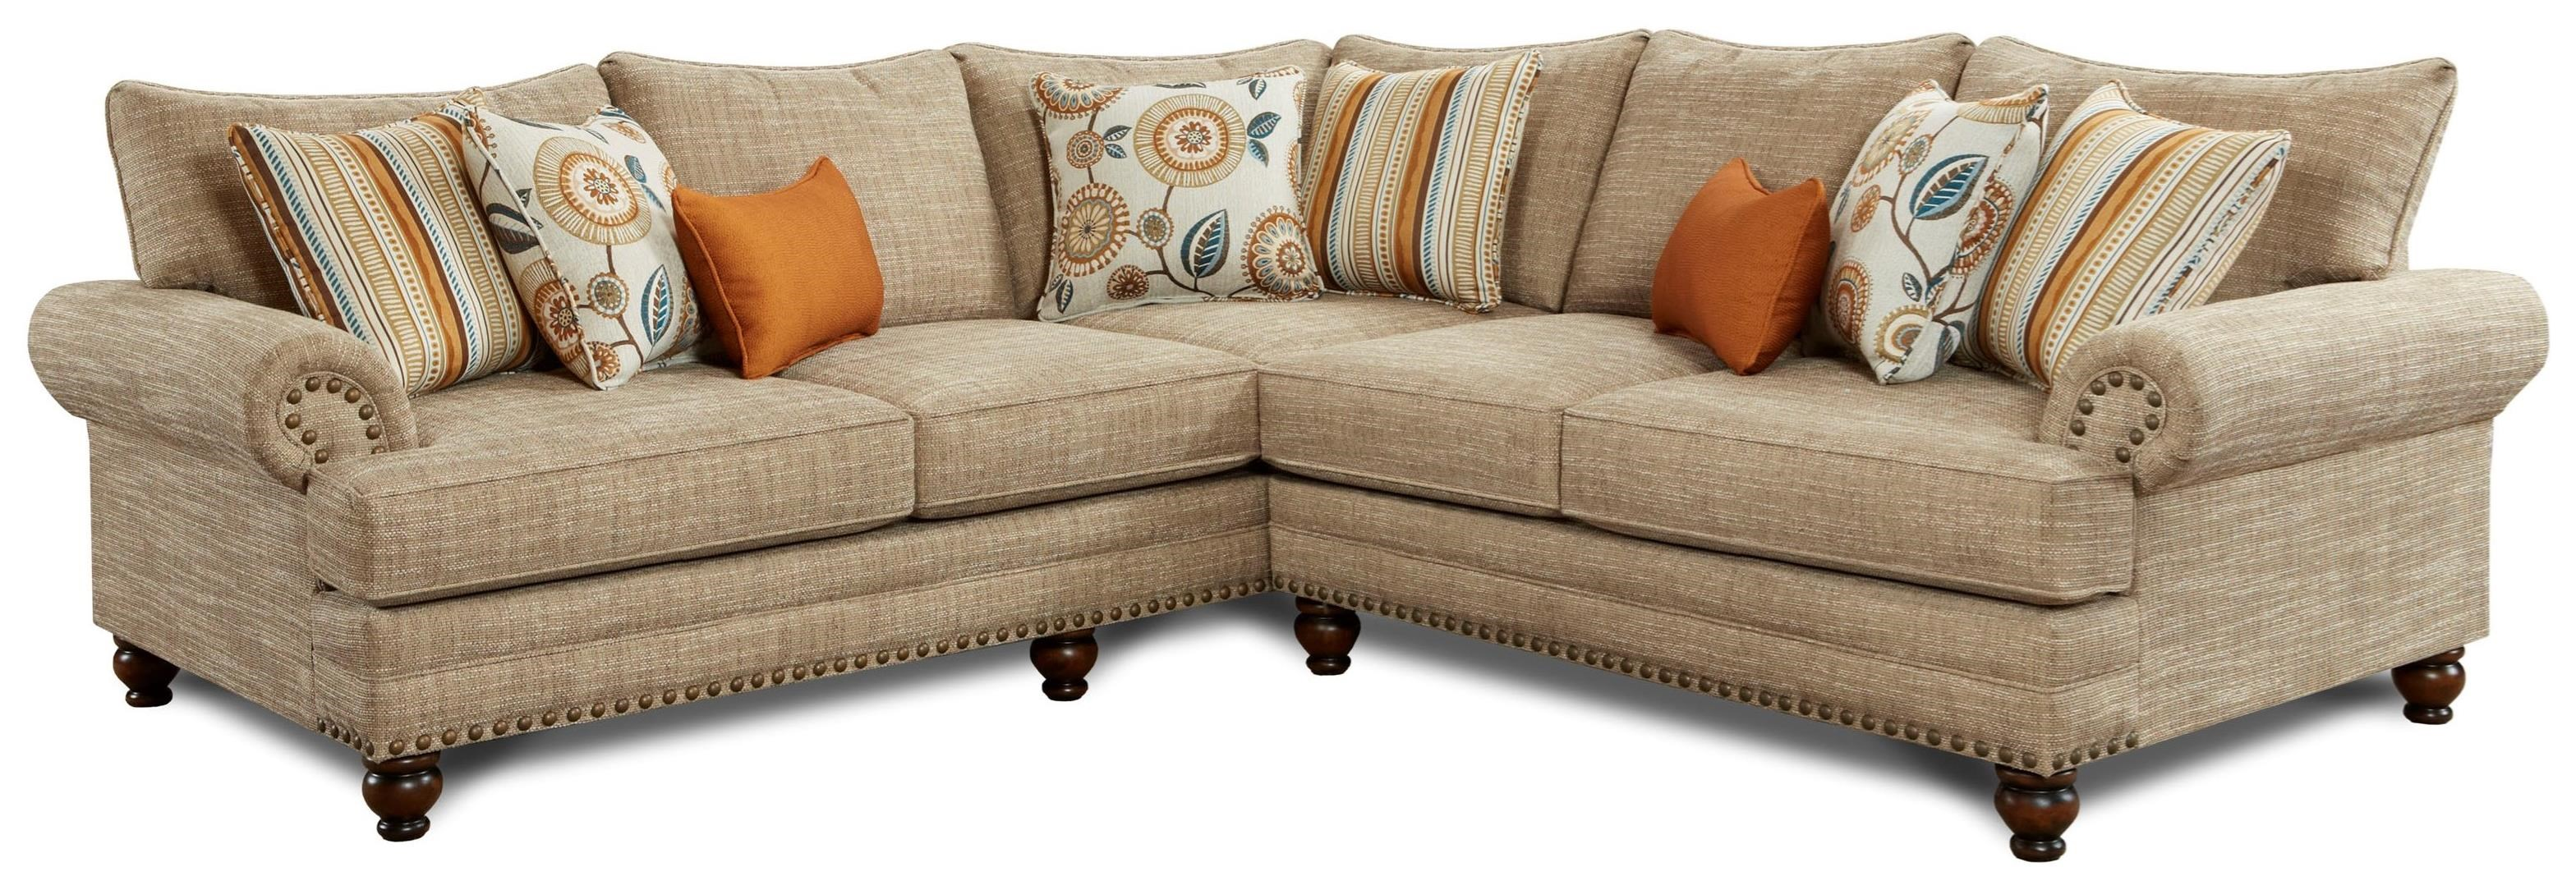 Haley Jordan Nori 2 Piece Corner Sectional with Nailhead Trim